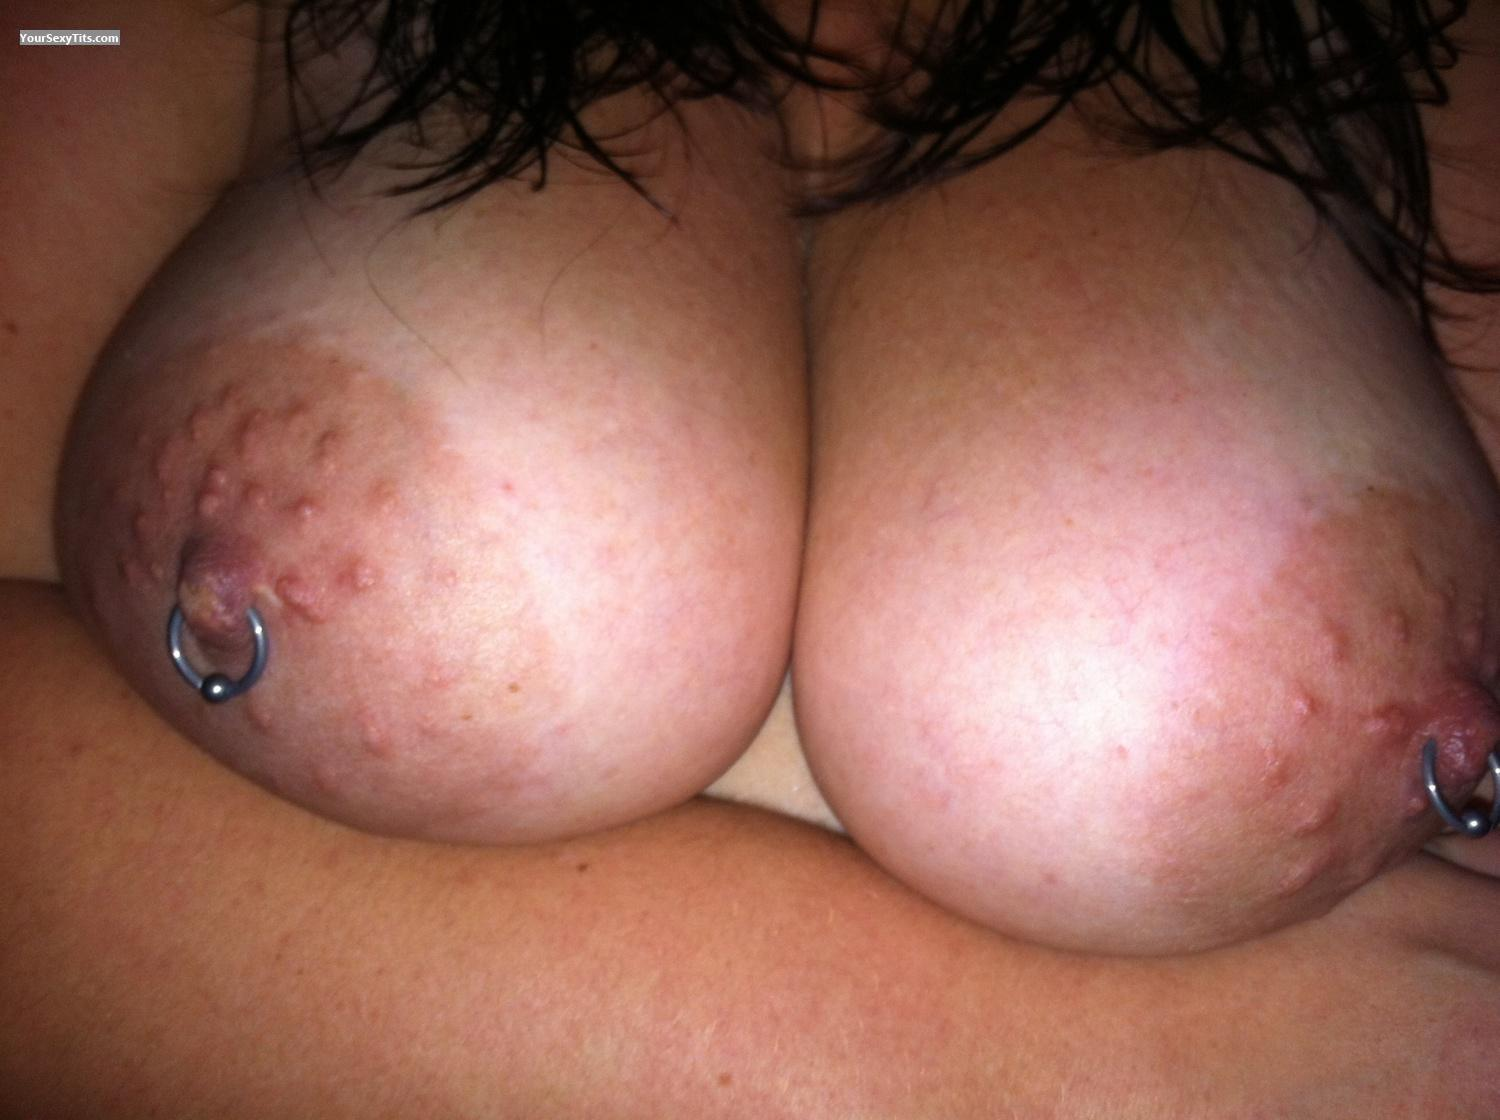 big titsiphone - yummy from united states tit flash id 113098